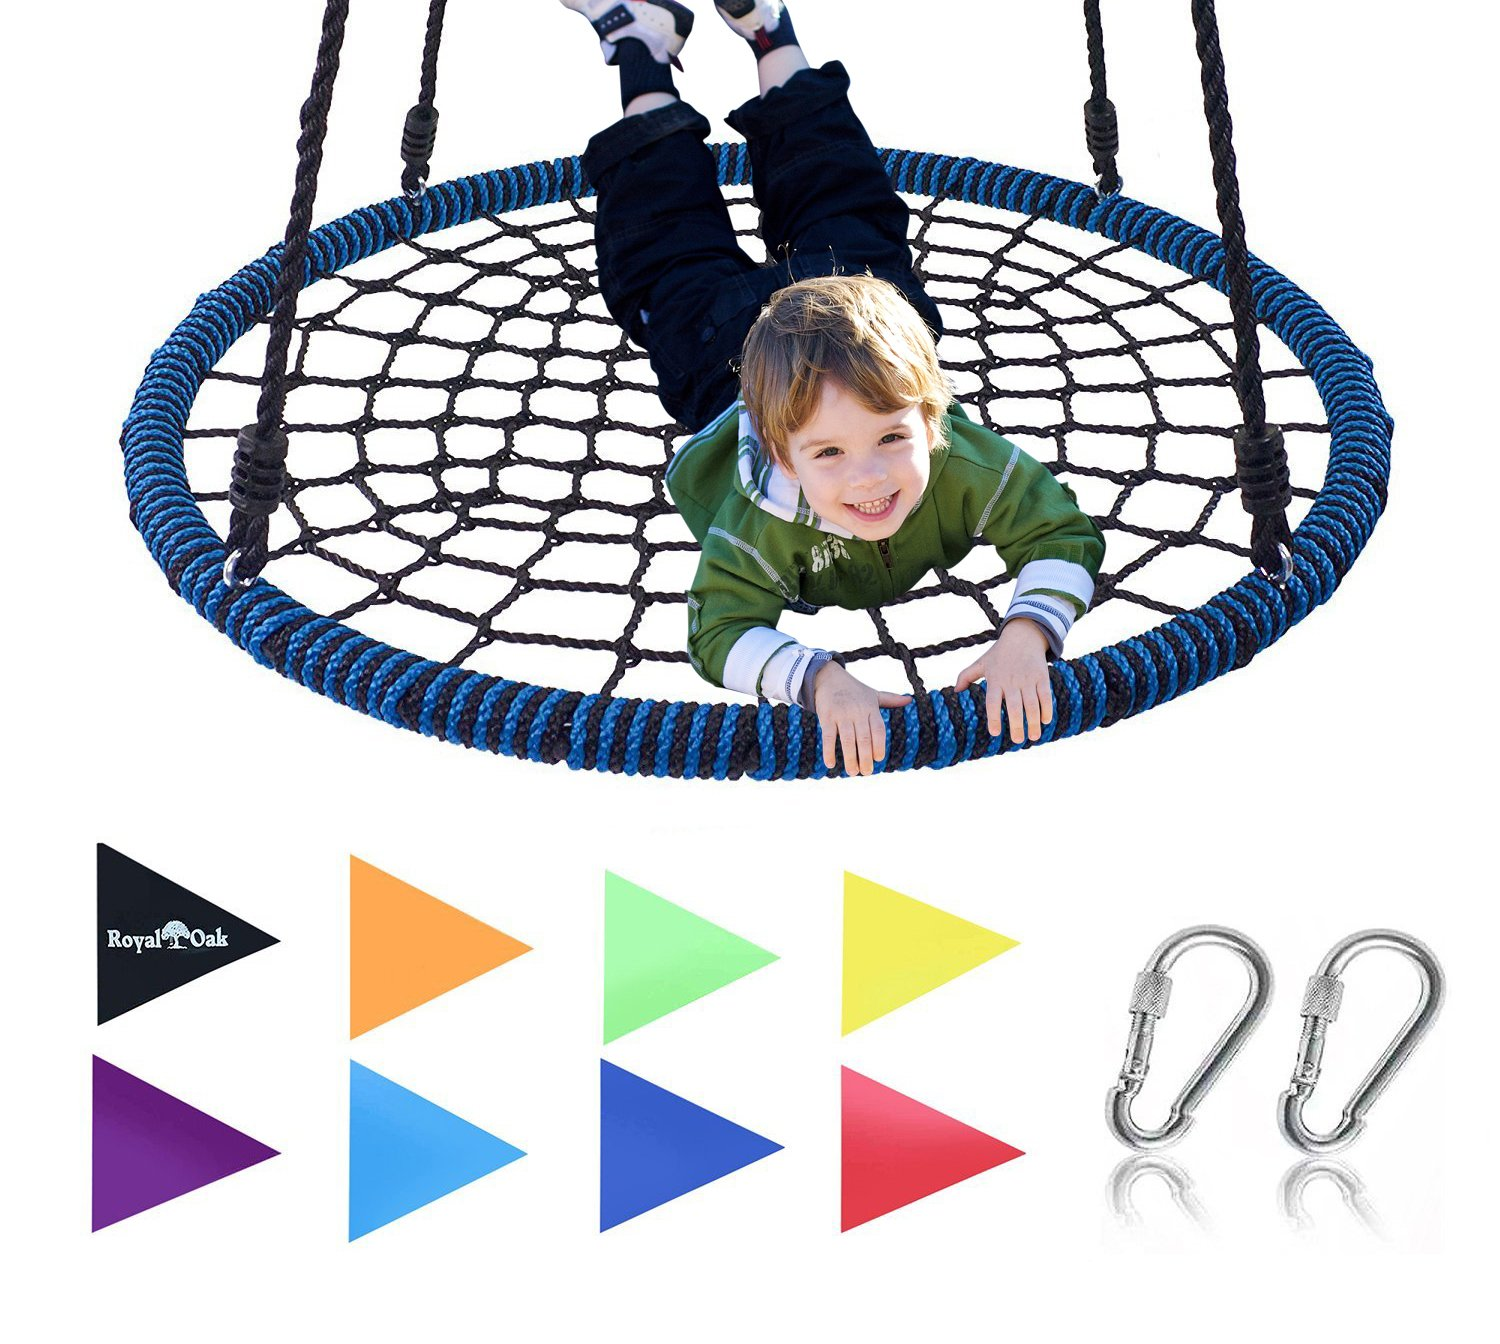 Royal Oak Giant 40 Inch Spider Web Tree Swing, Bonus Protective Swing Cover and Flags, 600 lb Weight Capacity, Easy Install, Steel Frame by Royal Oak